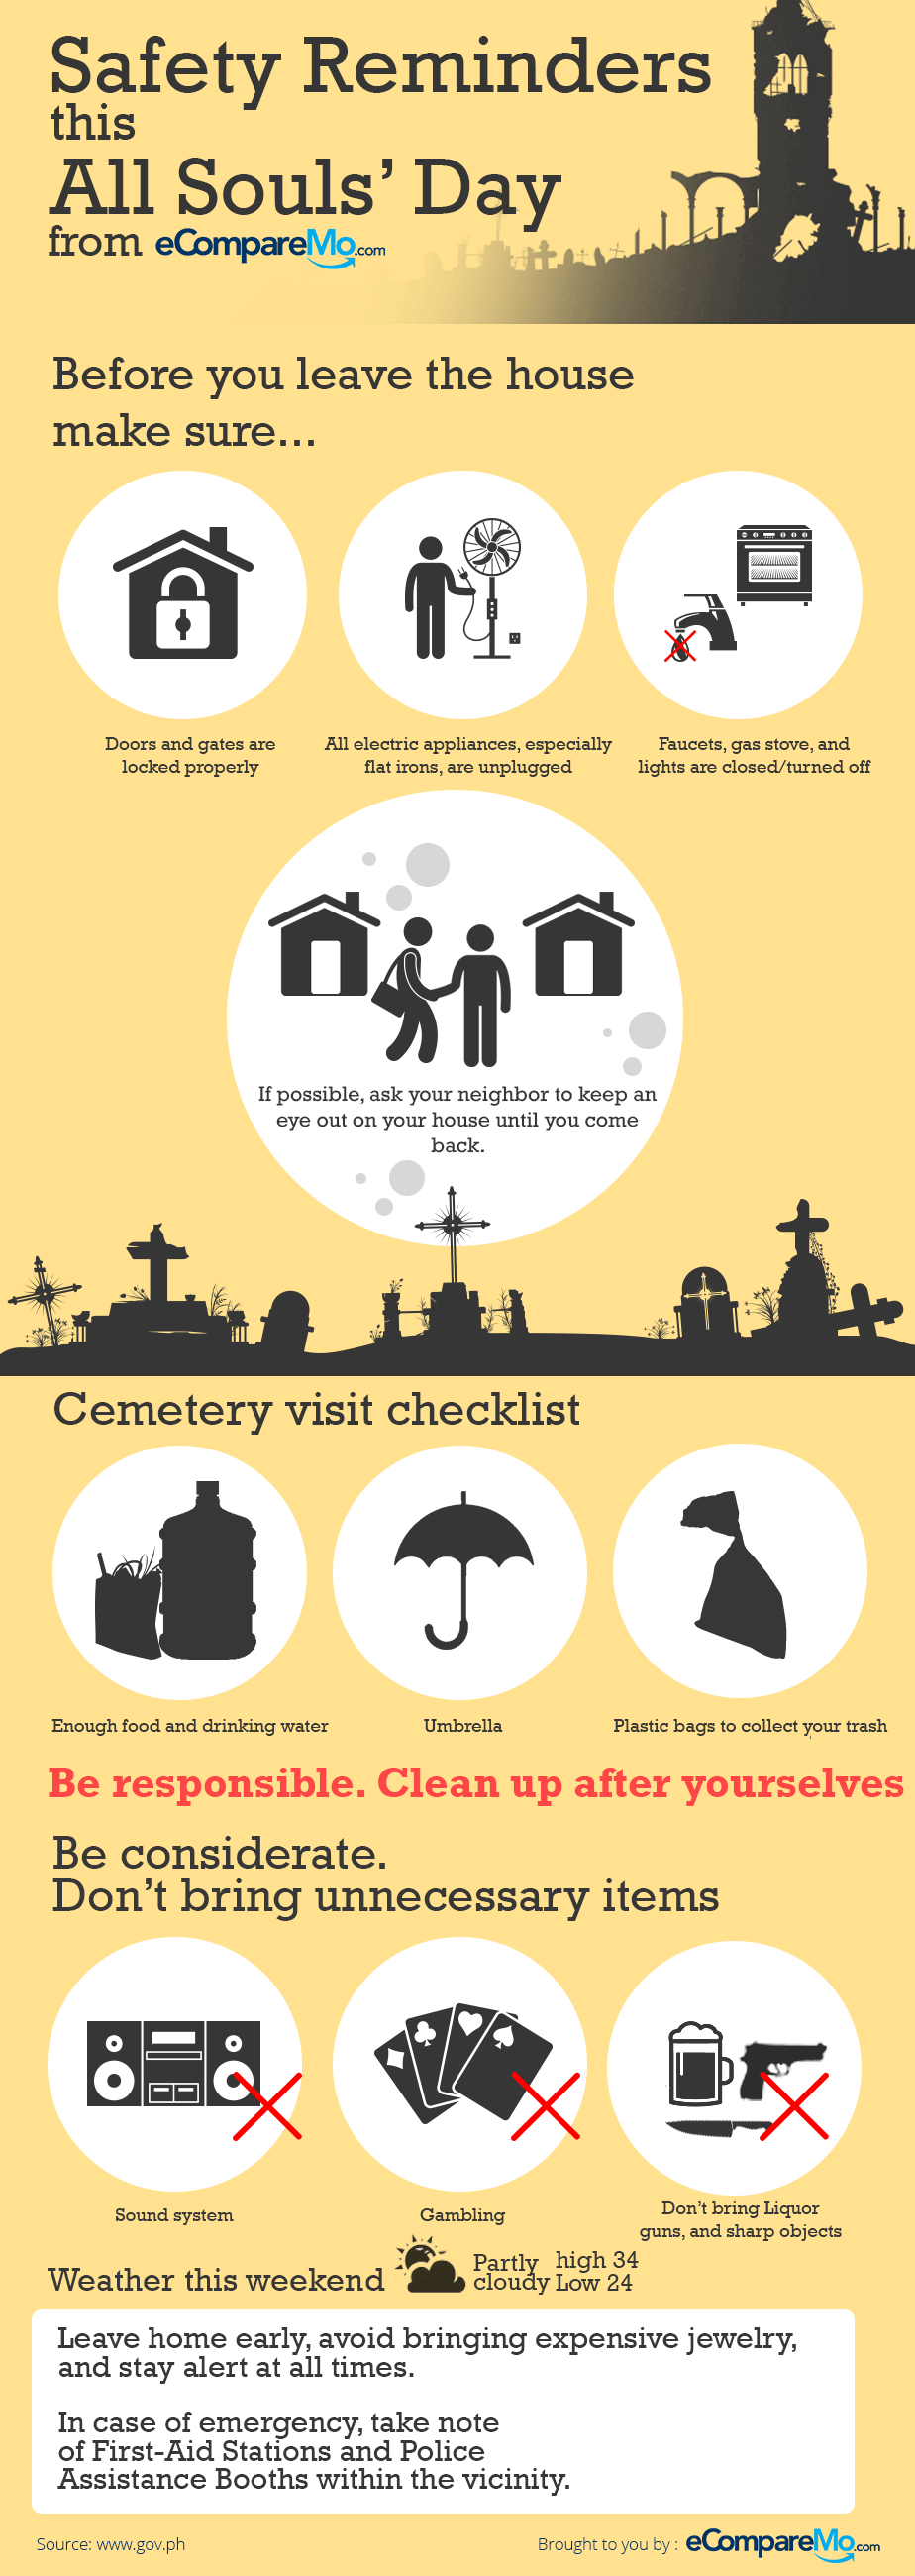 INFOGRAPHIC: All Souls' Day Safety Tips